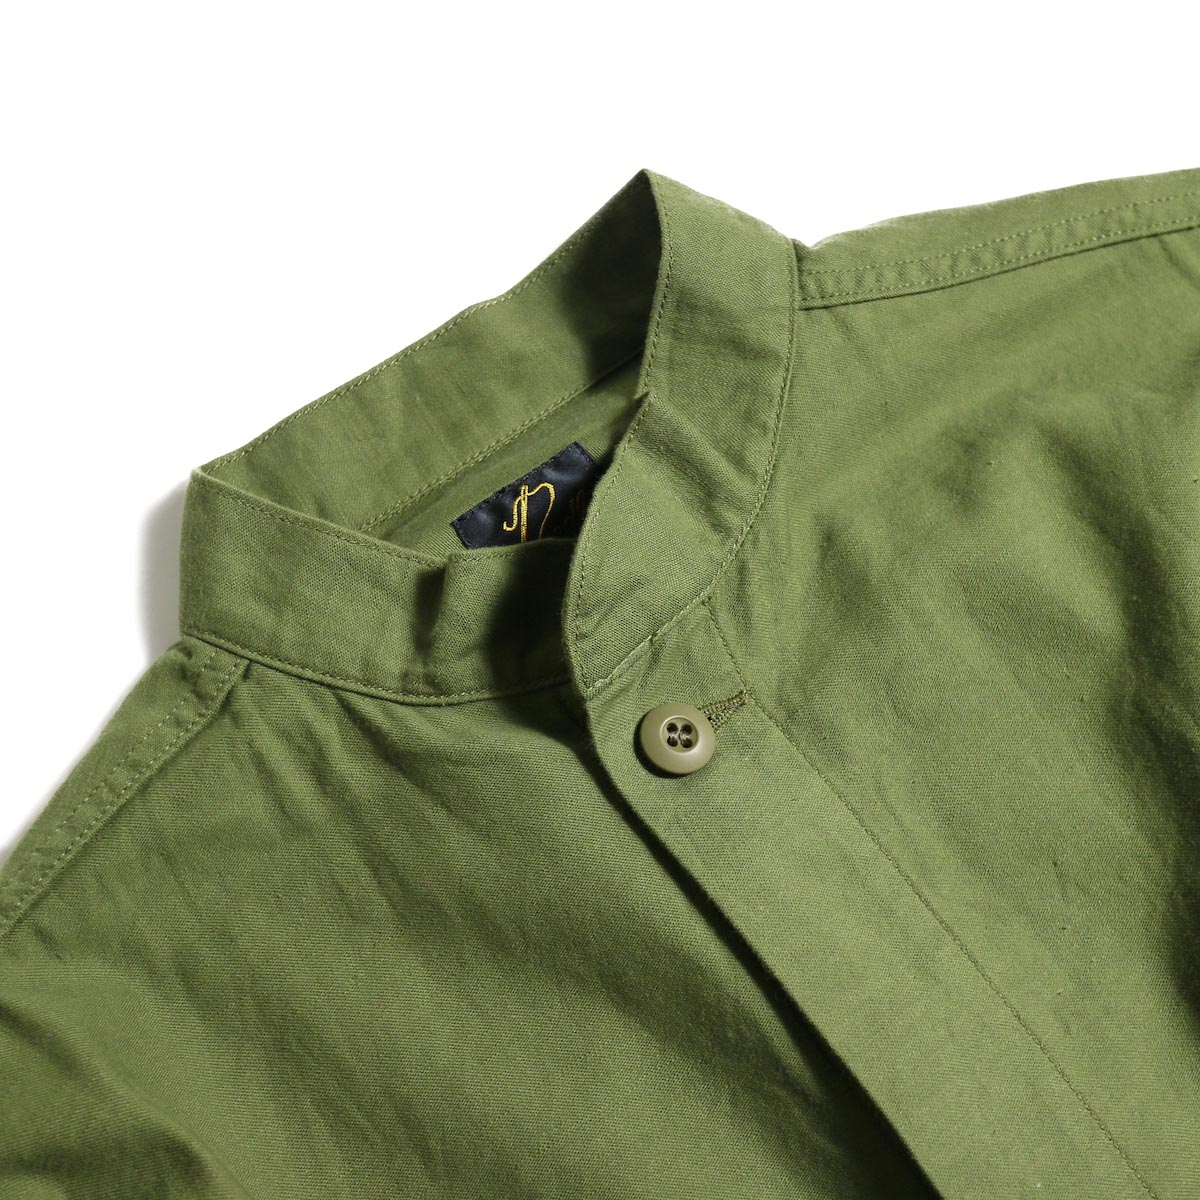 Needles / S.C. ARMY SHIRT - BACK SATEEN (Olive)スタンドカラー